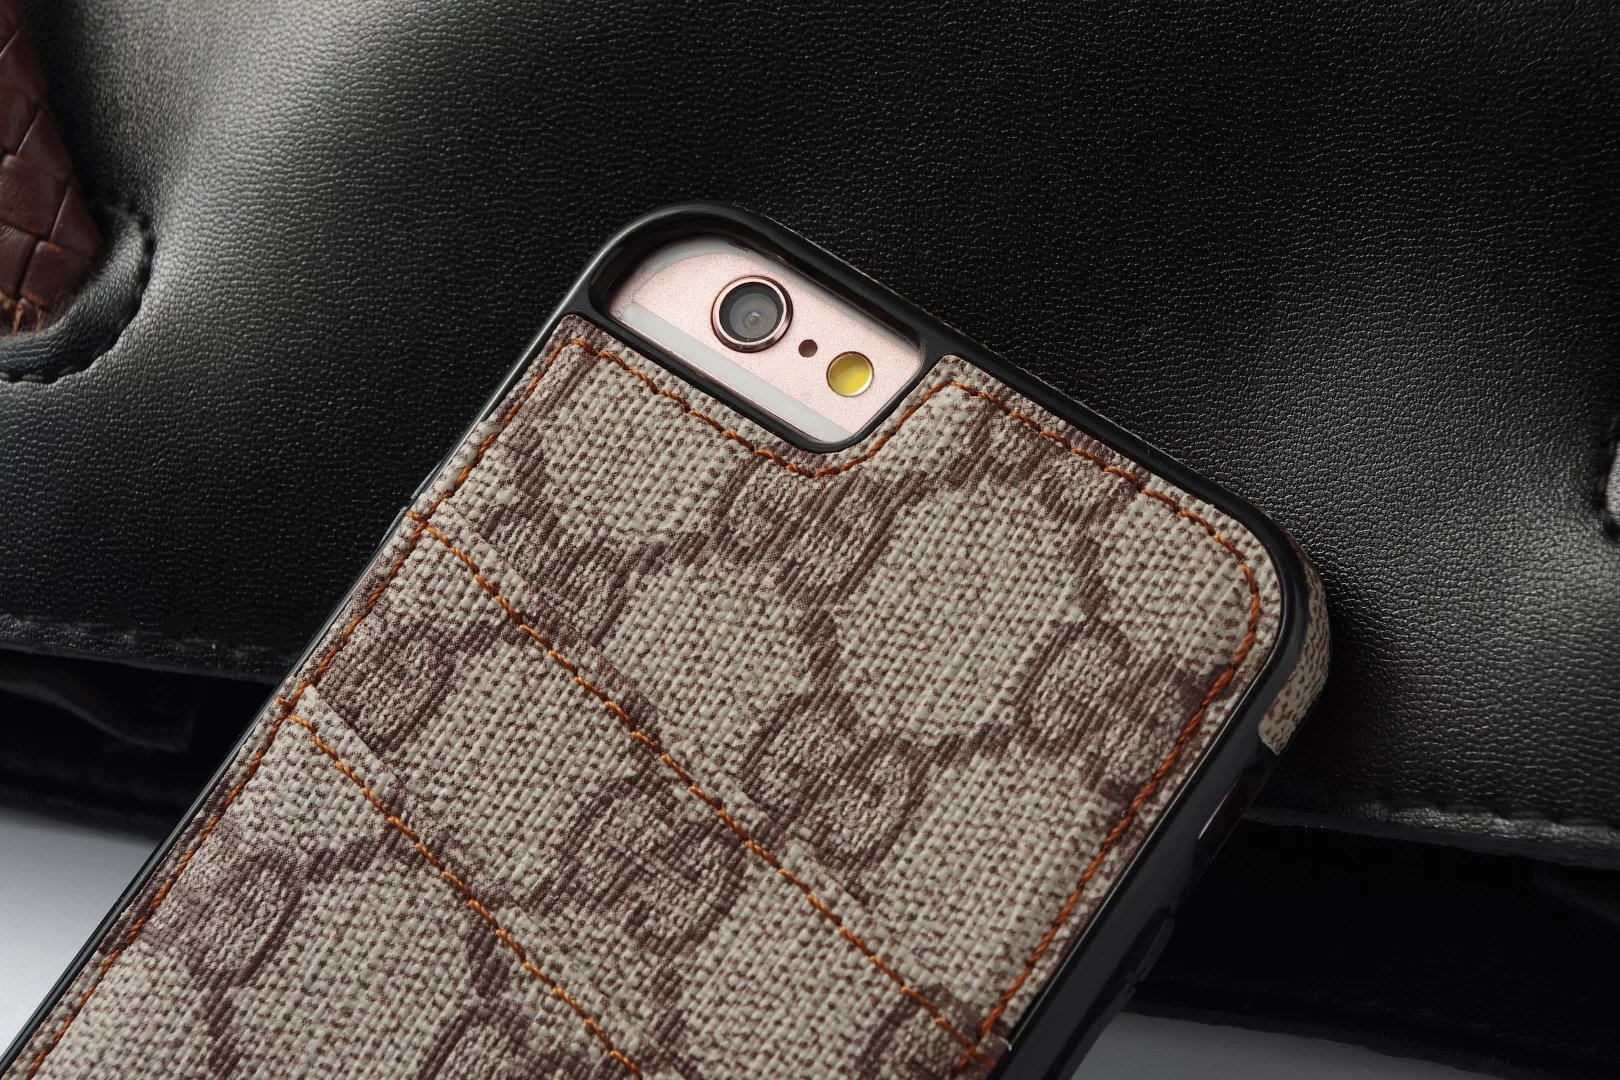 case 6 iphone protective case for iphone 6 fashion iphone6 case cases for ipohne 6 iphone 6 launch customize your own iphone 6 case hello iphone case good phone covers